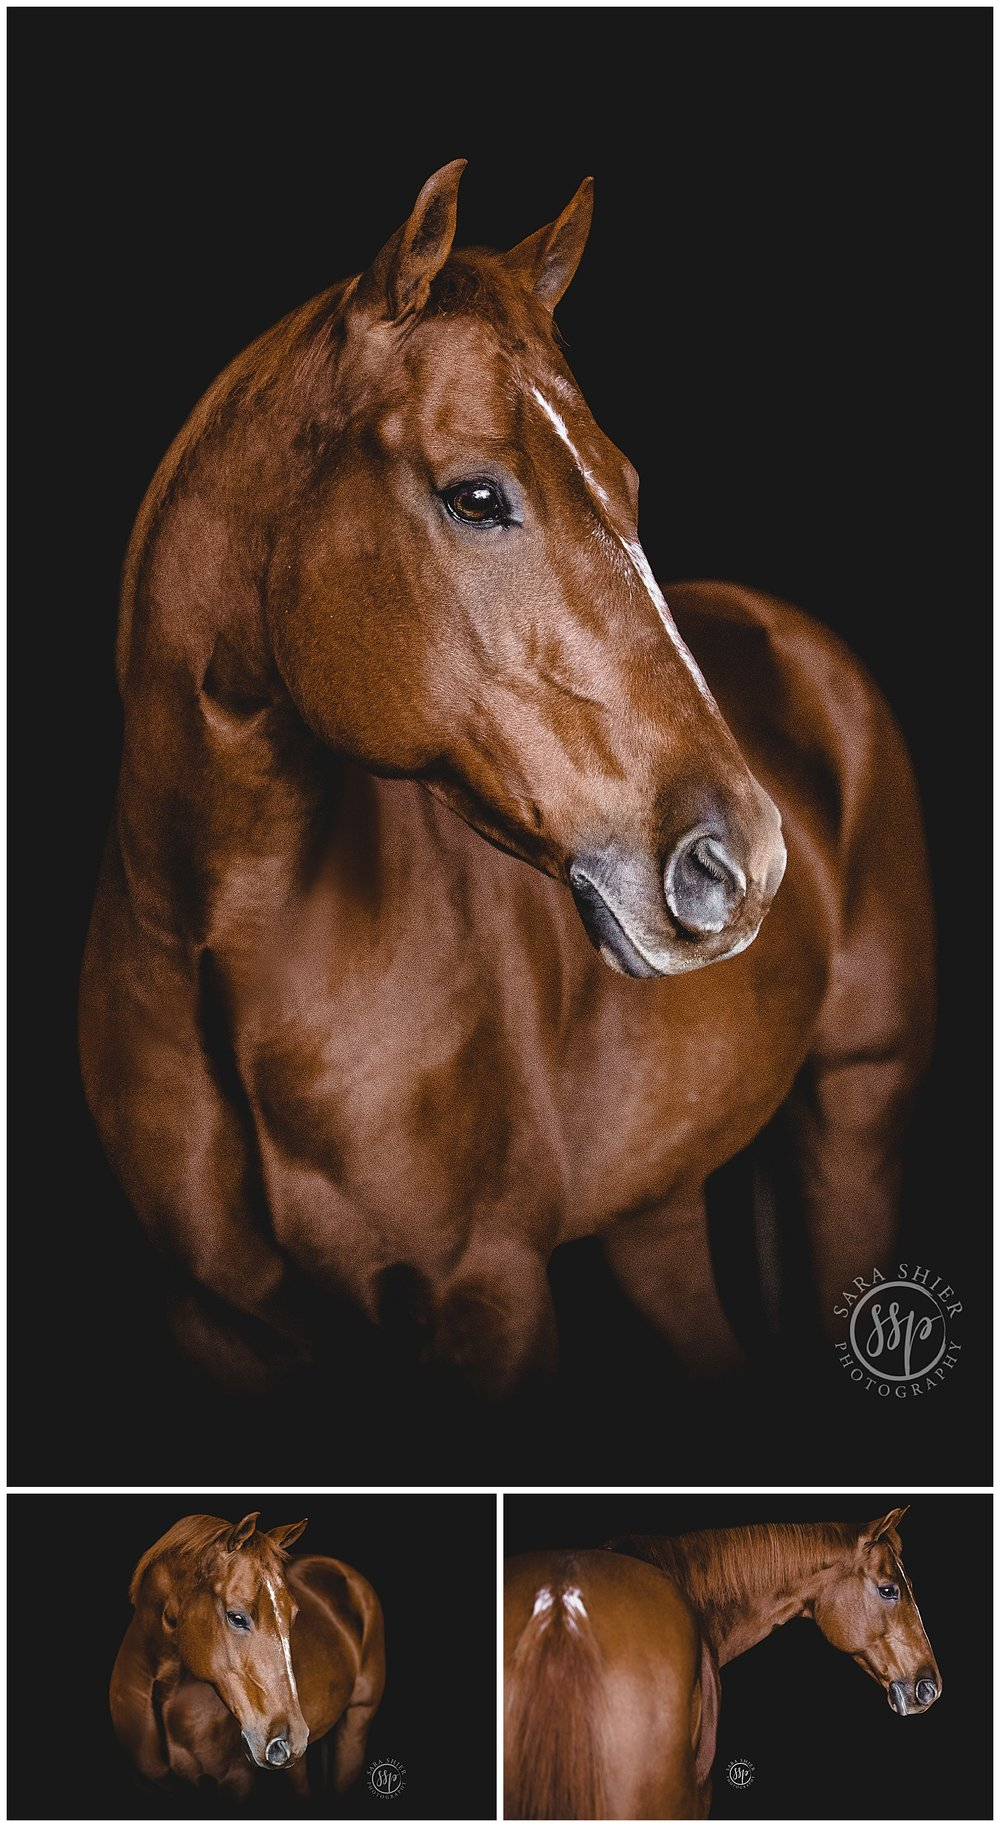 Black Background Horse Rider Equine Photographer Southern California Sara Shier Photography SoCal Equestrian Cowgirl_0337.jpg